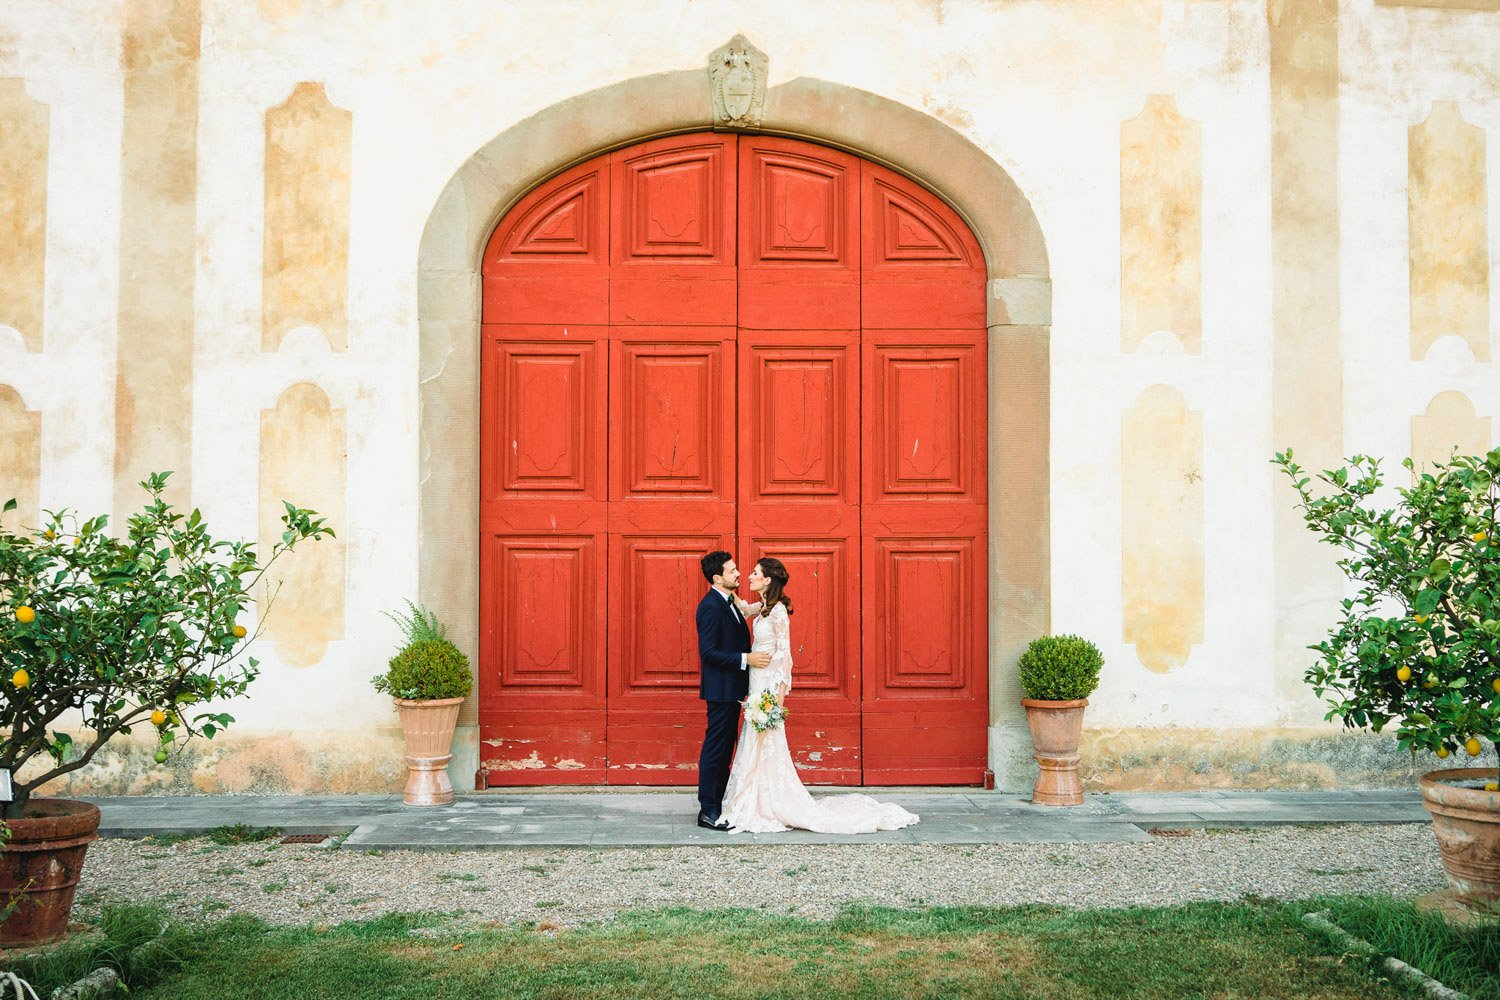 duesudue_wedding_photographer_tuscany-25